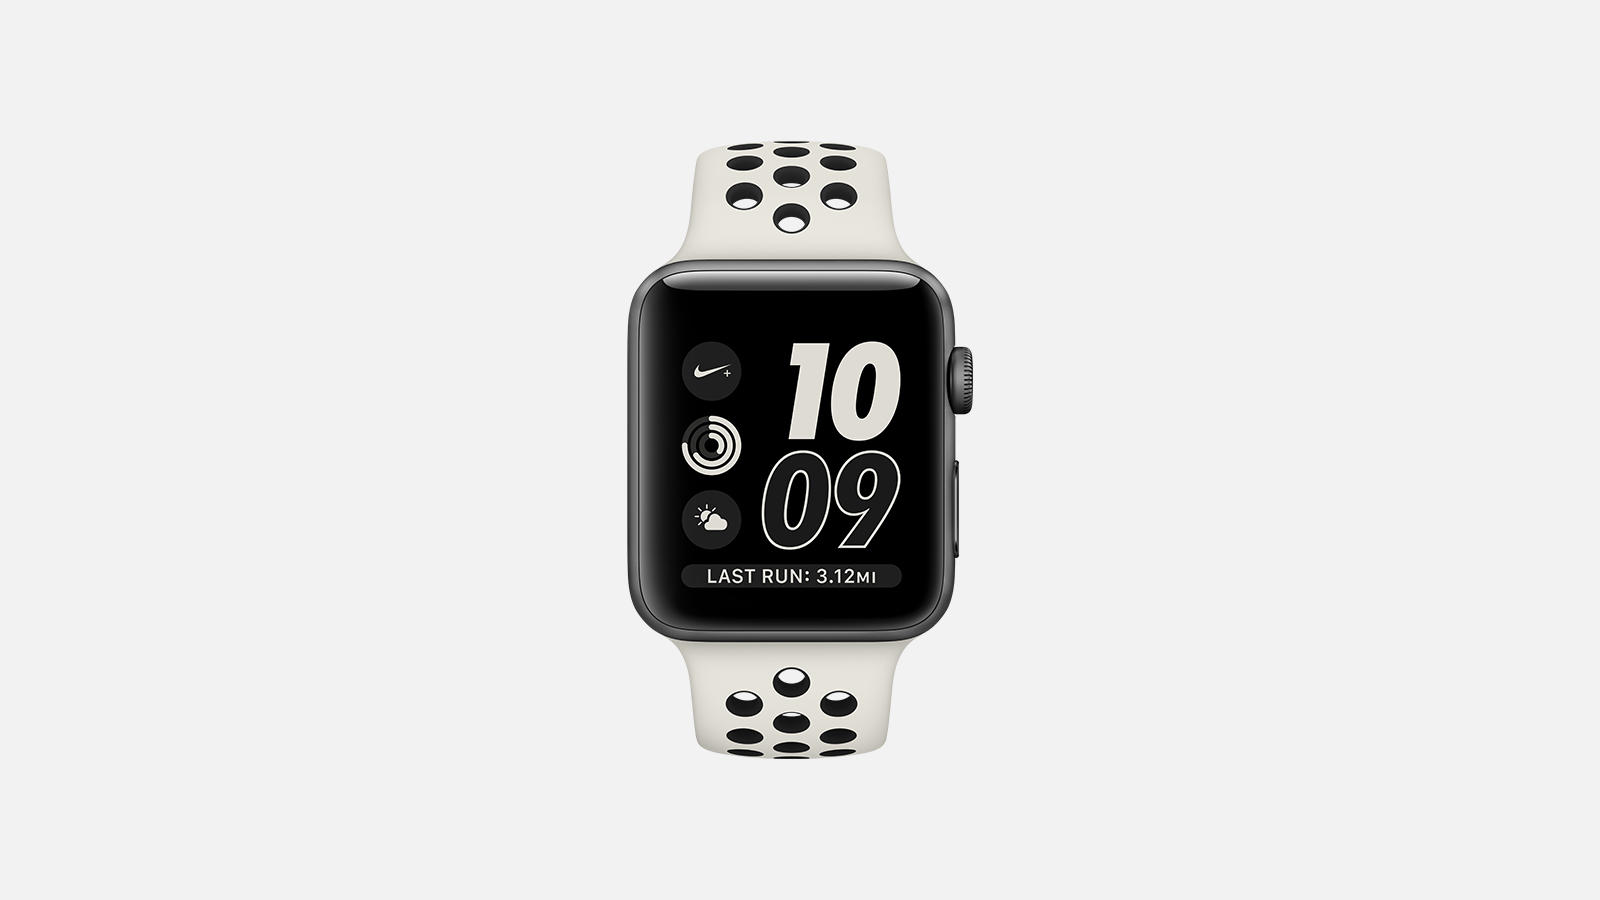 apple_watch_nikelab_2_hd_1600.jpg